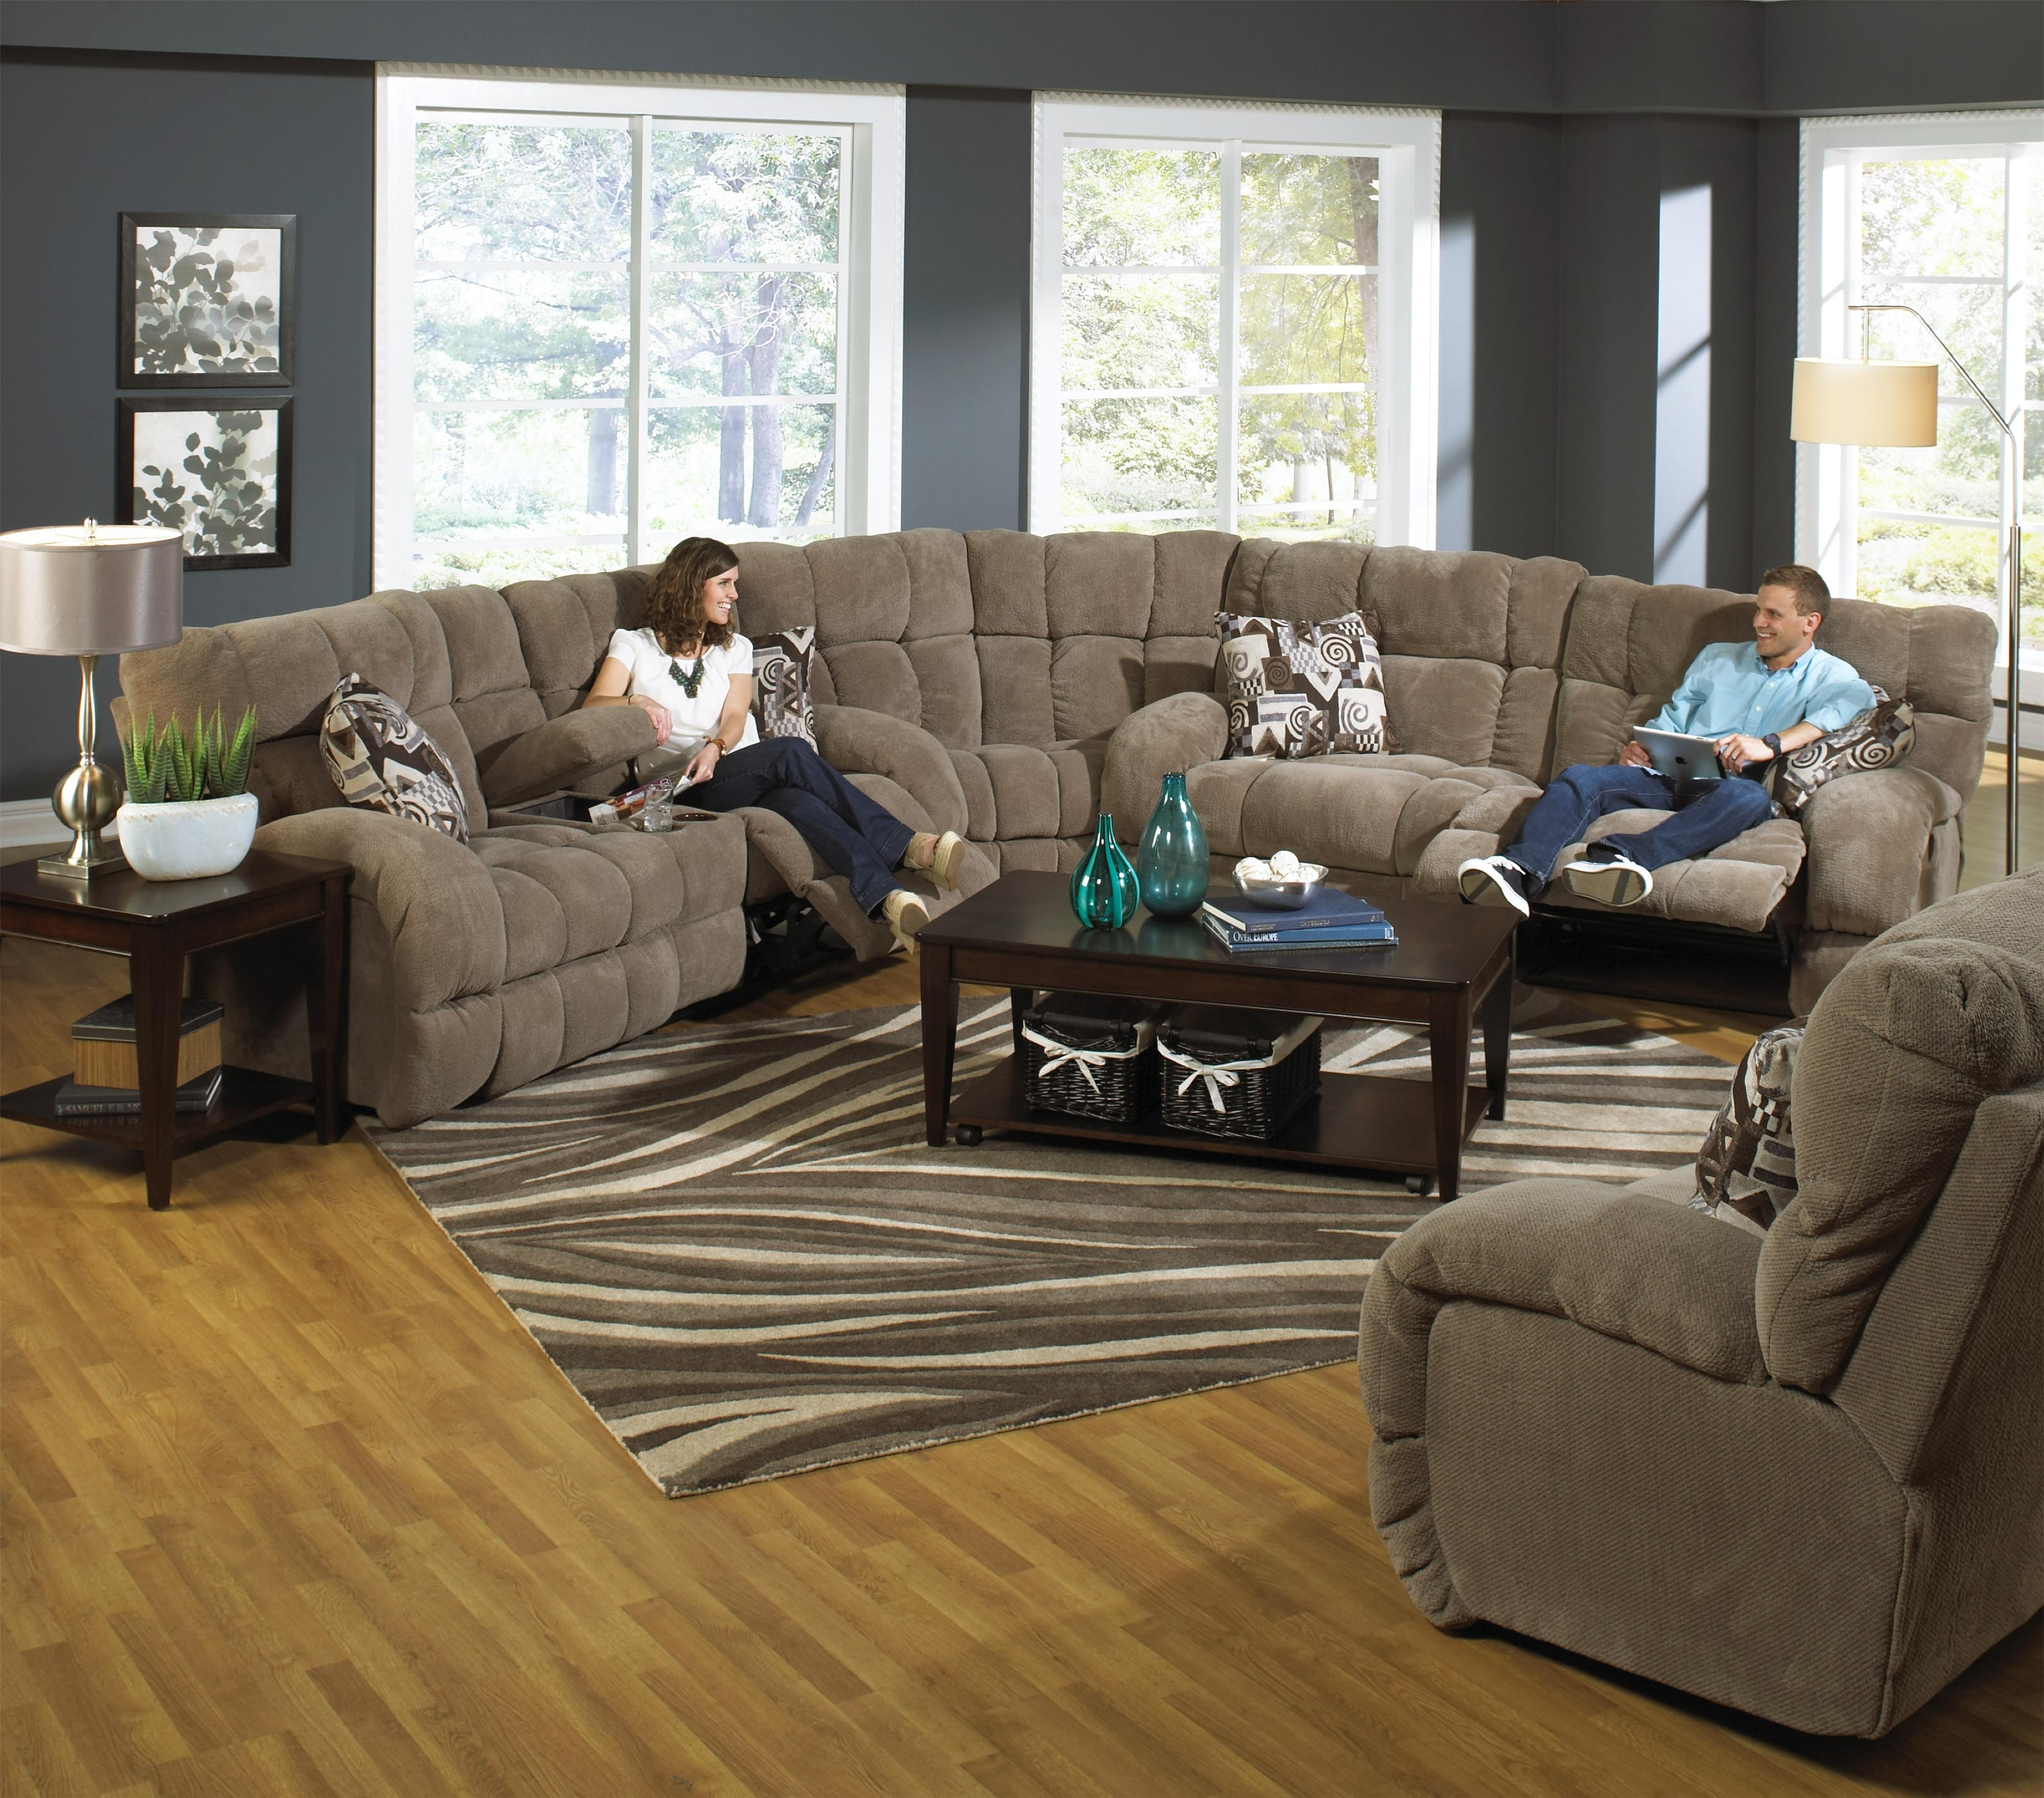 Reclining Sectional Sofa With Cup Holderscatnapper | Wolf And With Sectional Sofas With Cup Holders (Image 5 of 10)